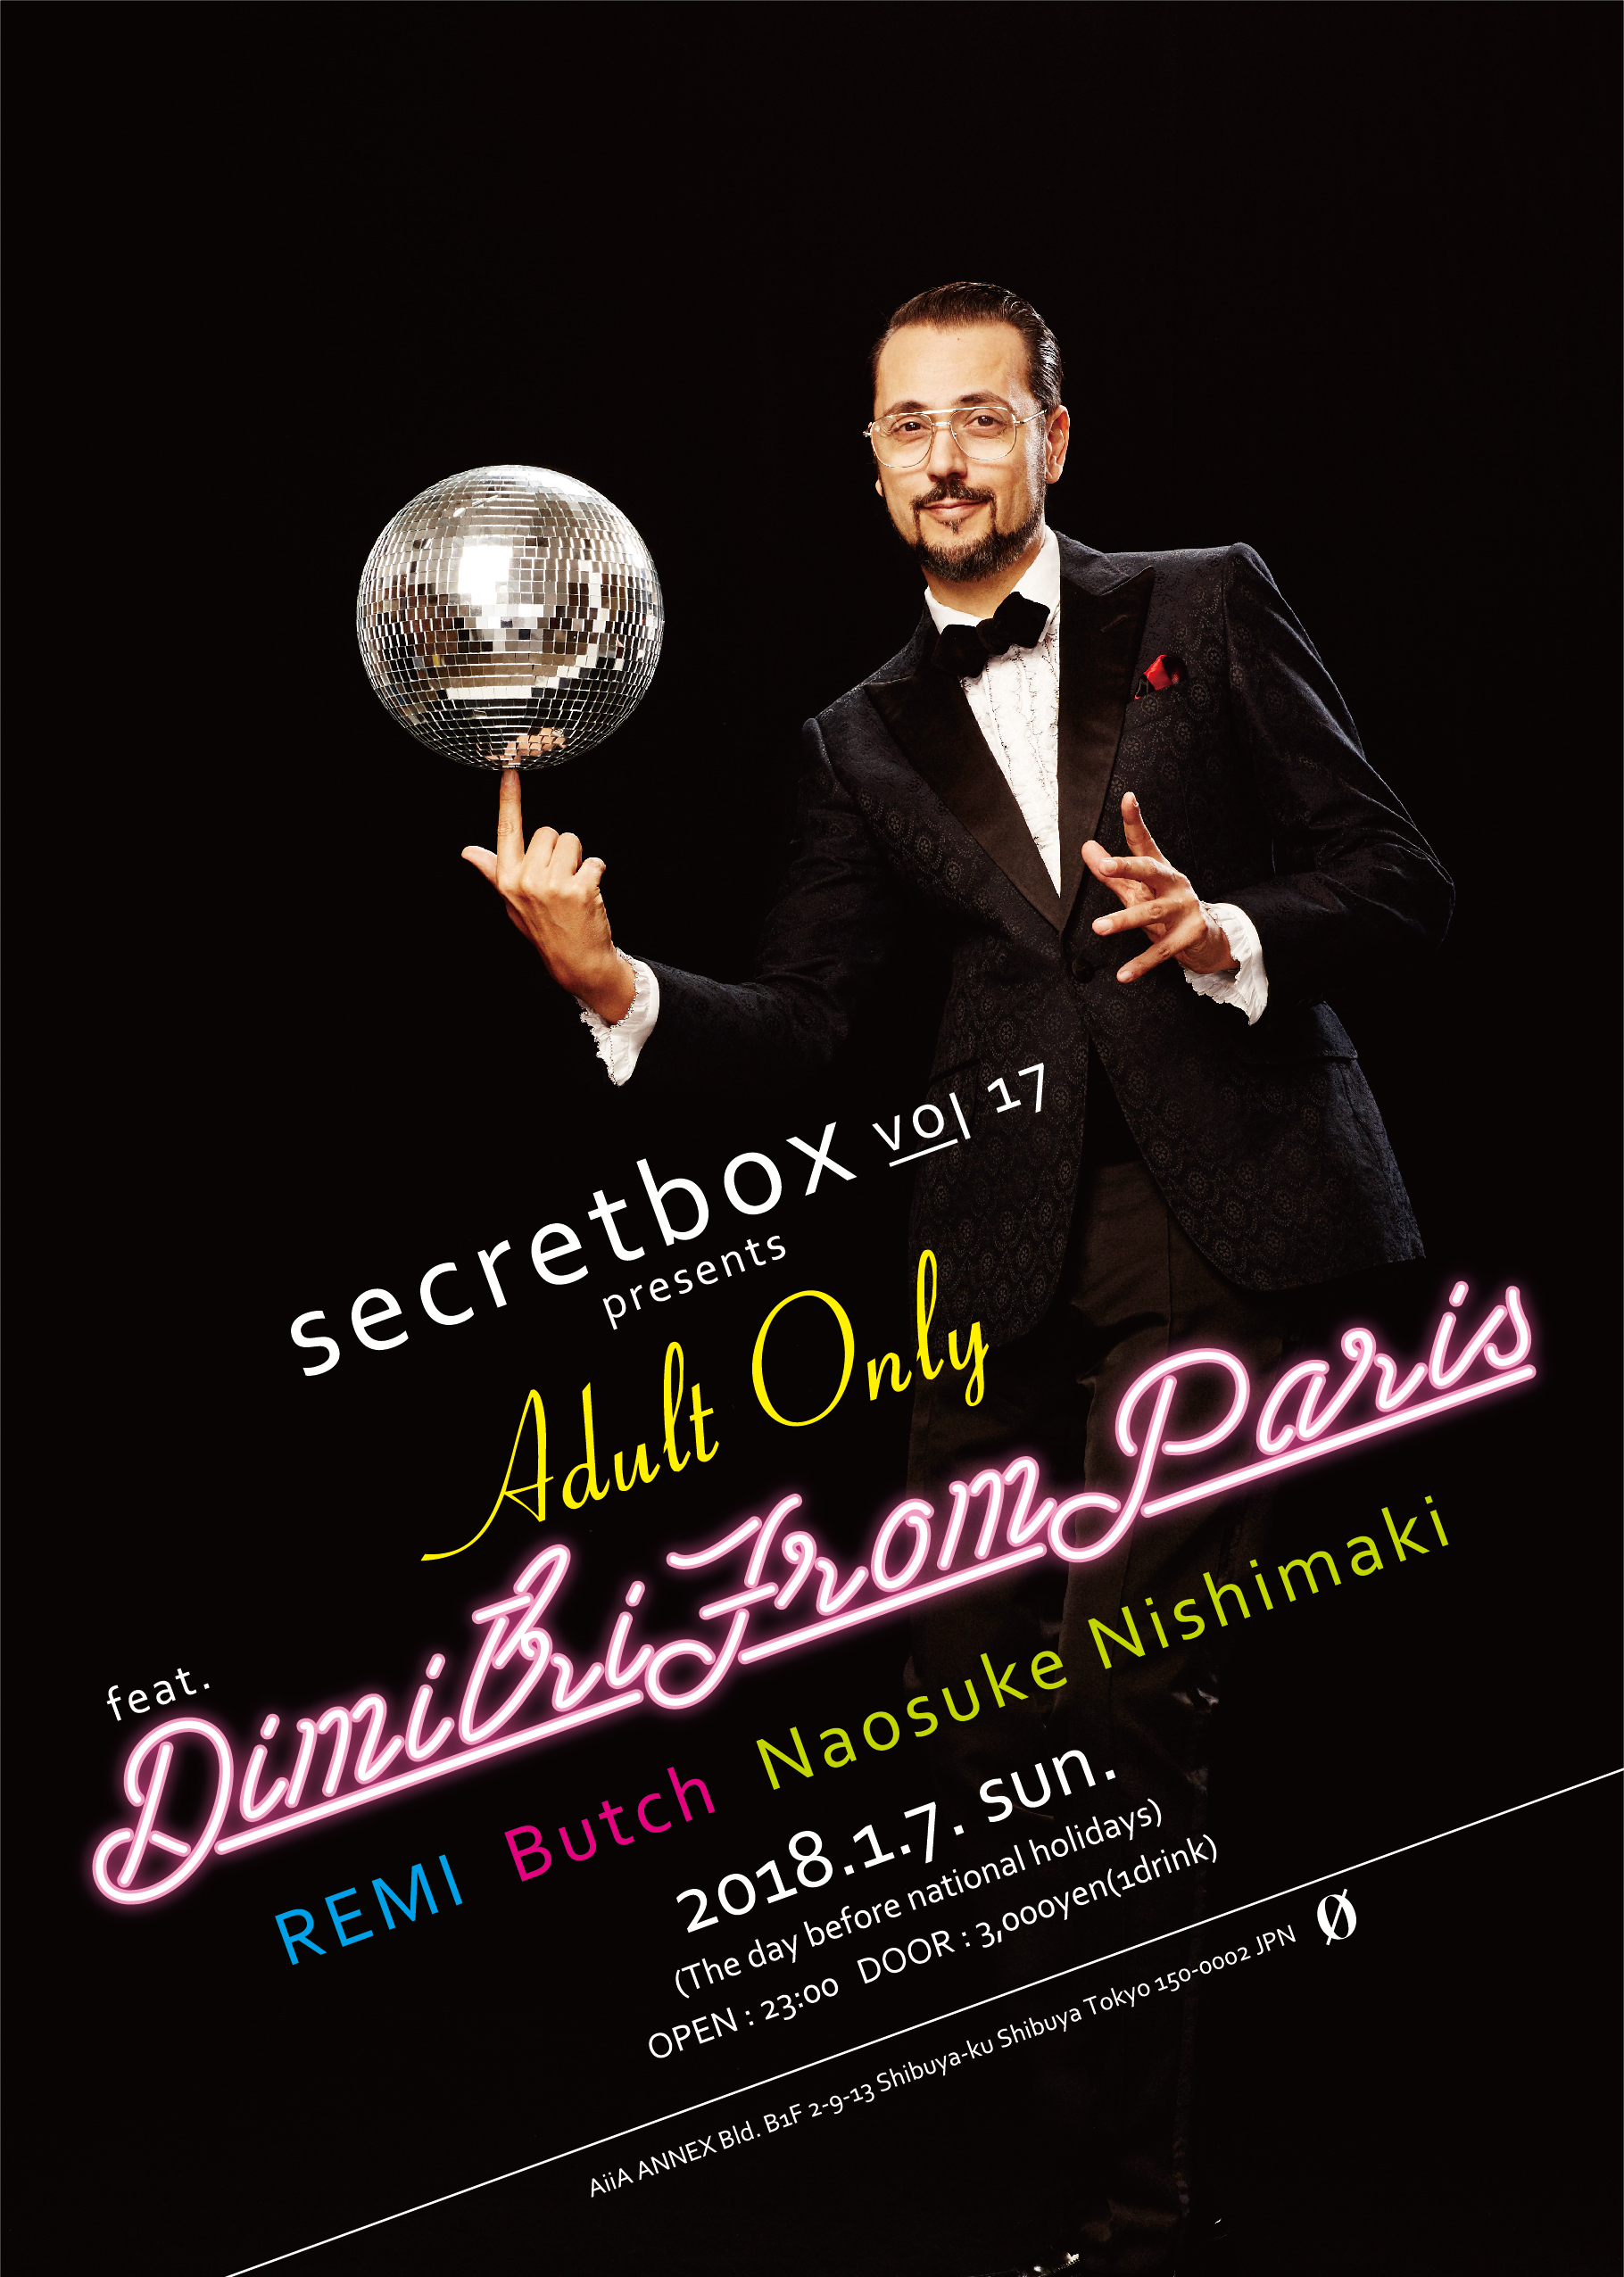 secretbox presents… Adult Only